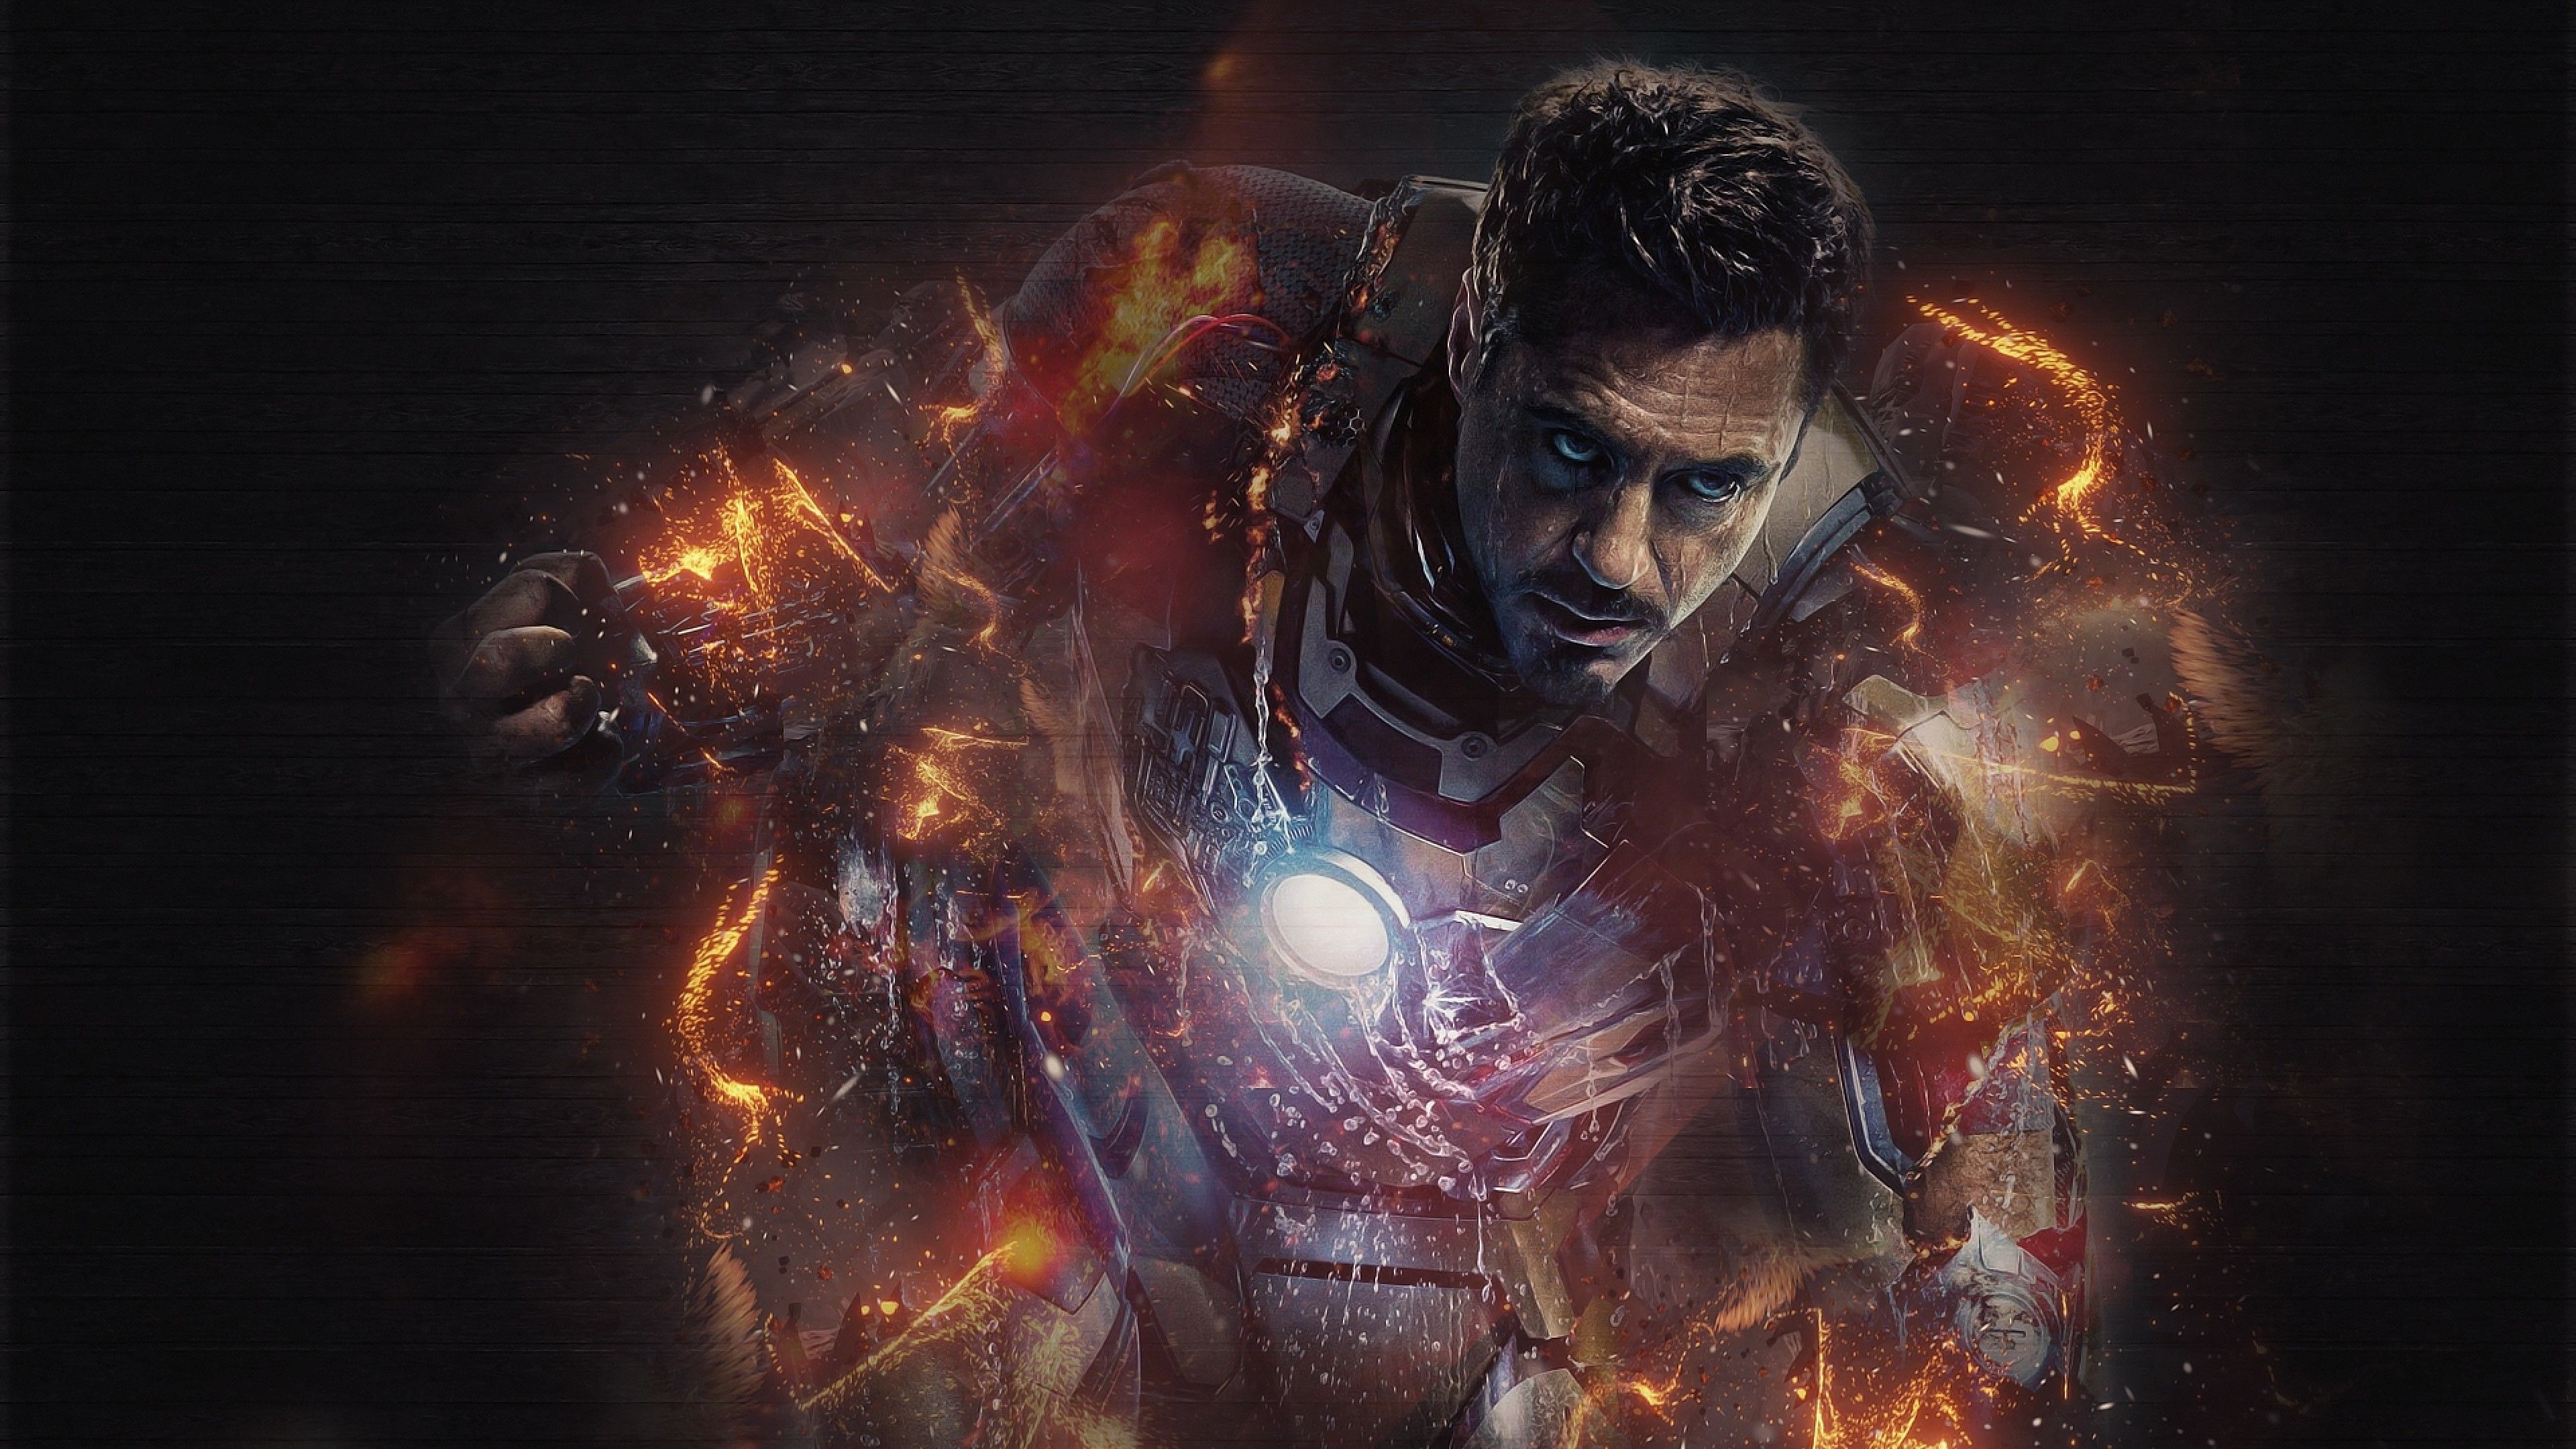 Ironman 4k 2018 Superheroes Wallpapers, Robert Downey Jr